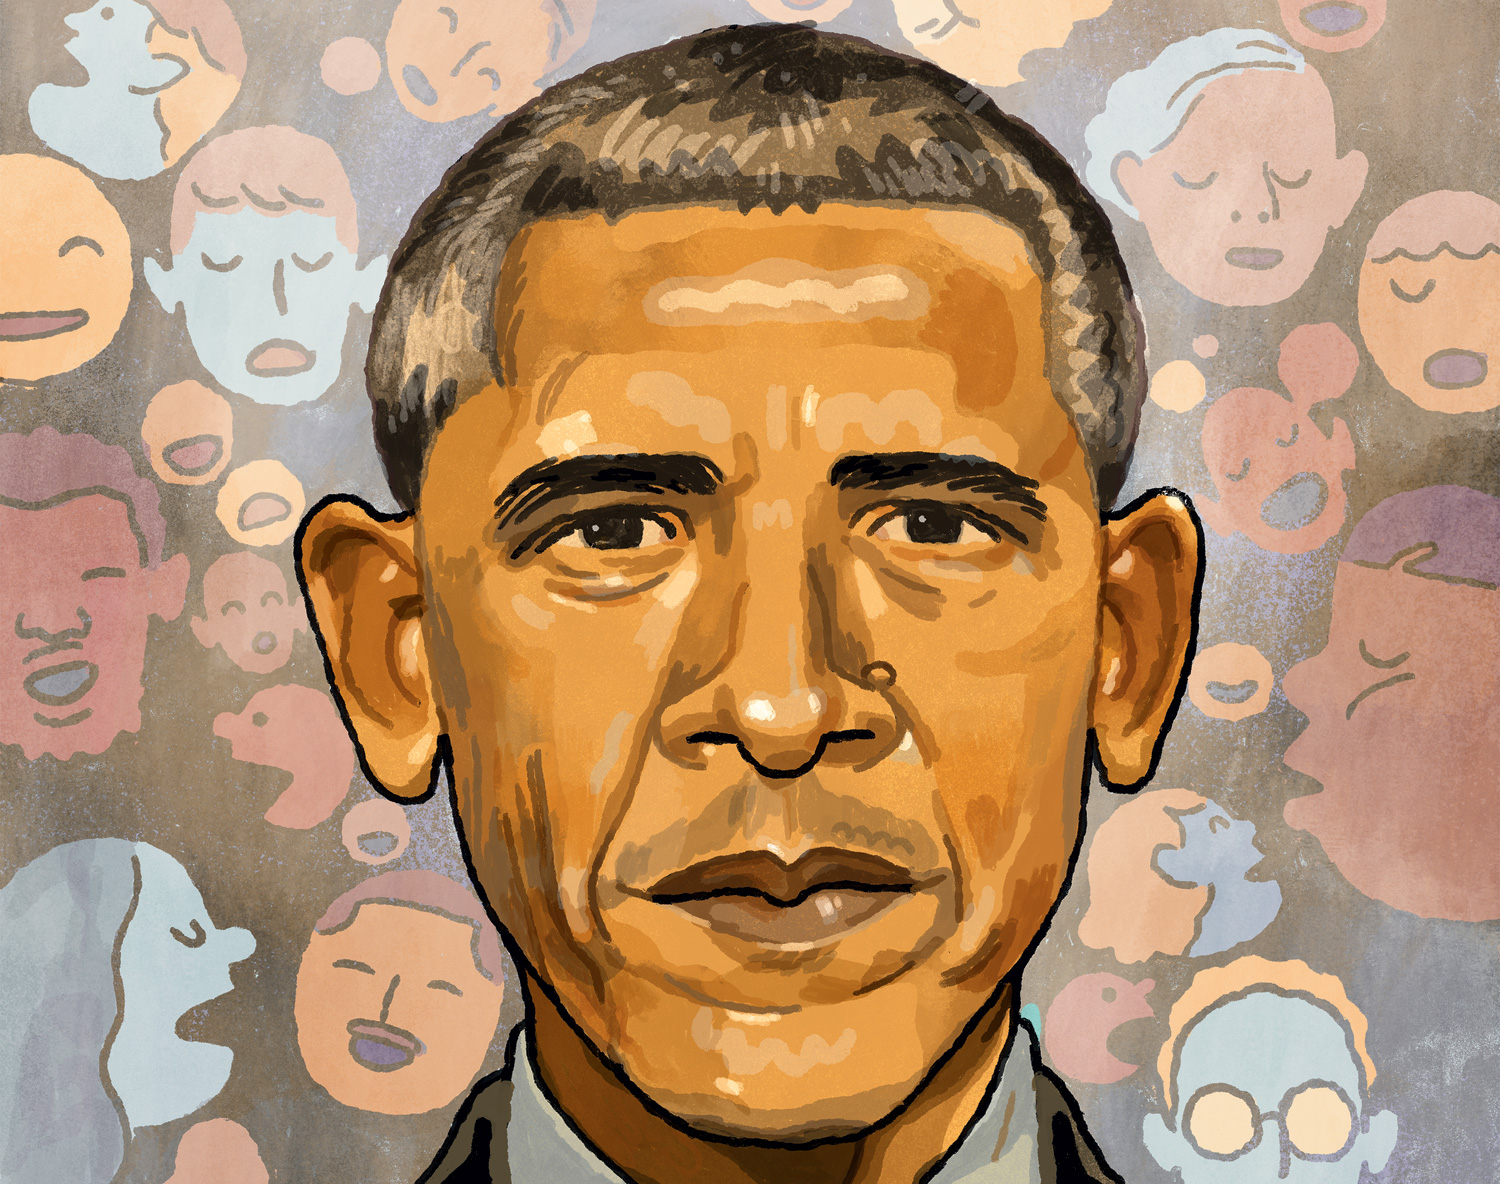 Illustrated portrait of Barack Obama by Richie Pope